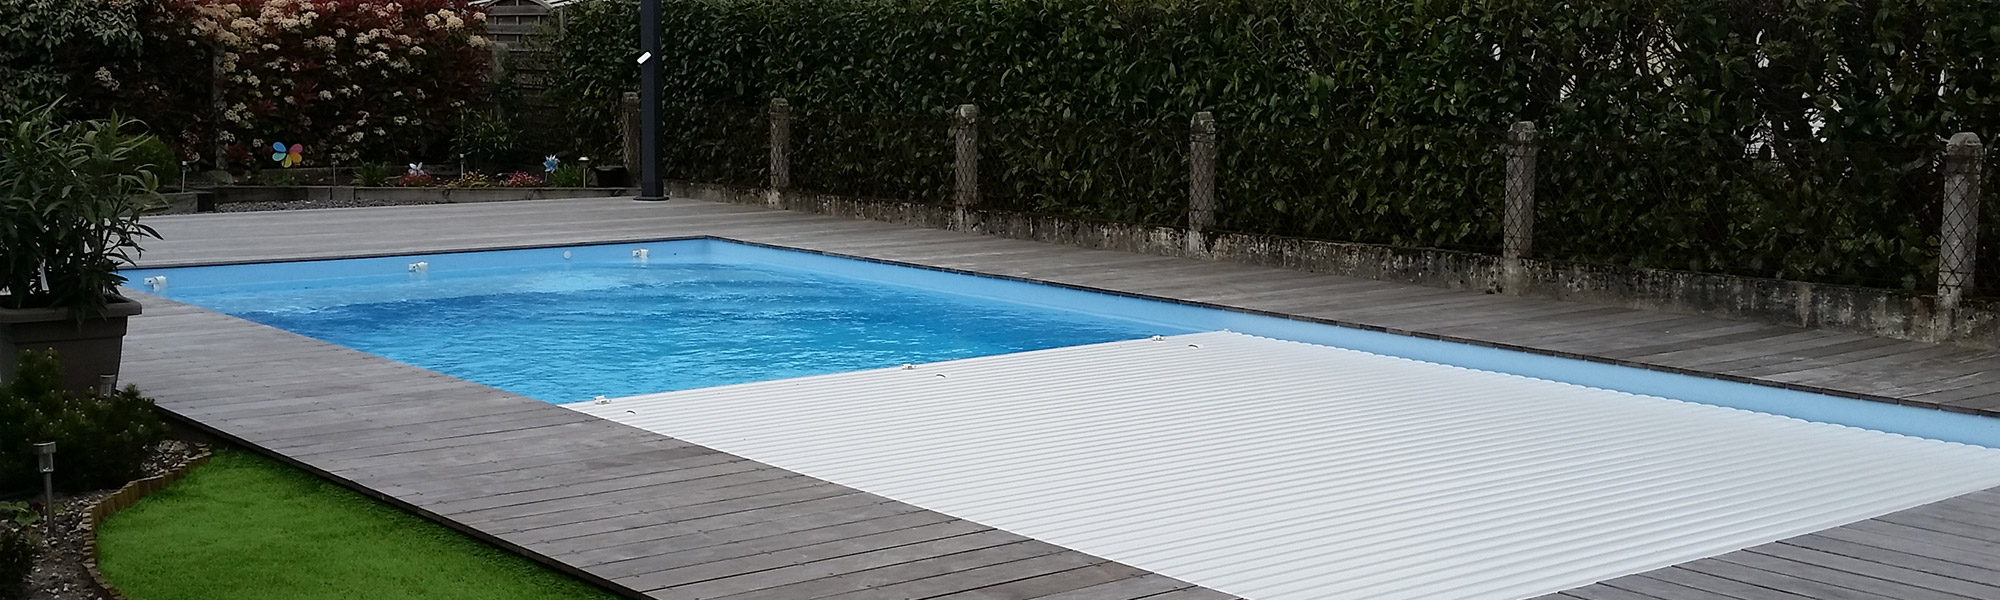 Matriel piscine pas cher elegant de piscine with matriel for Acheter materiel piscine